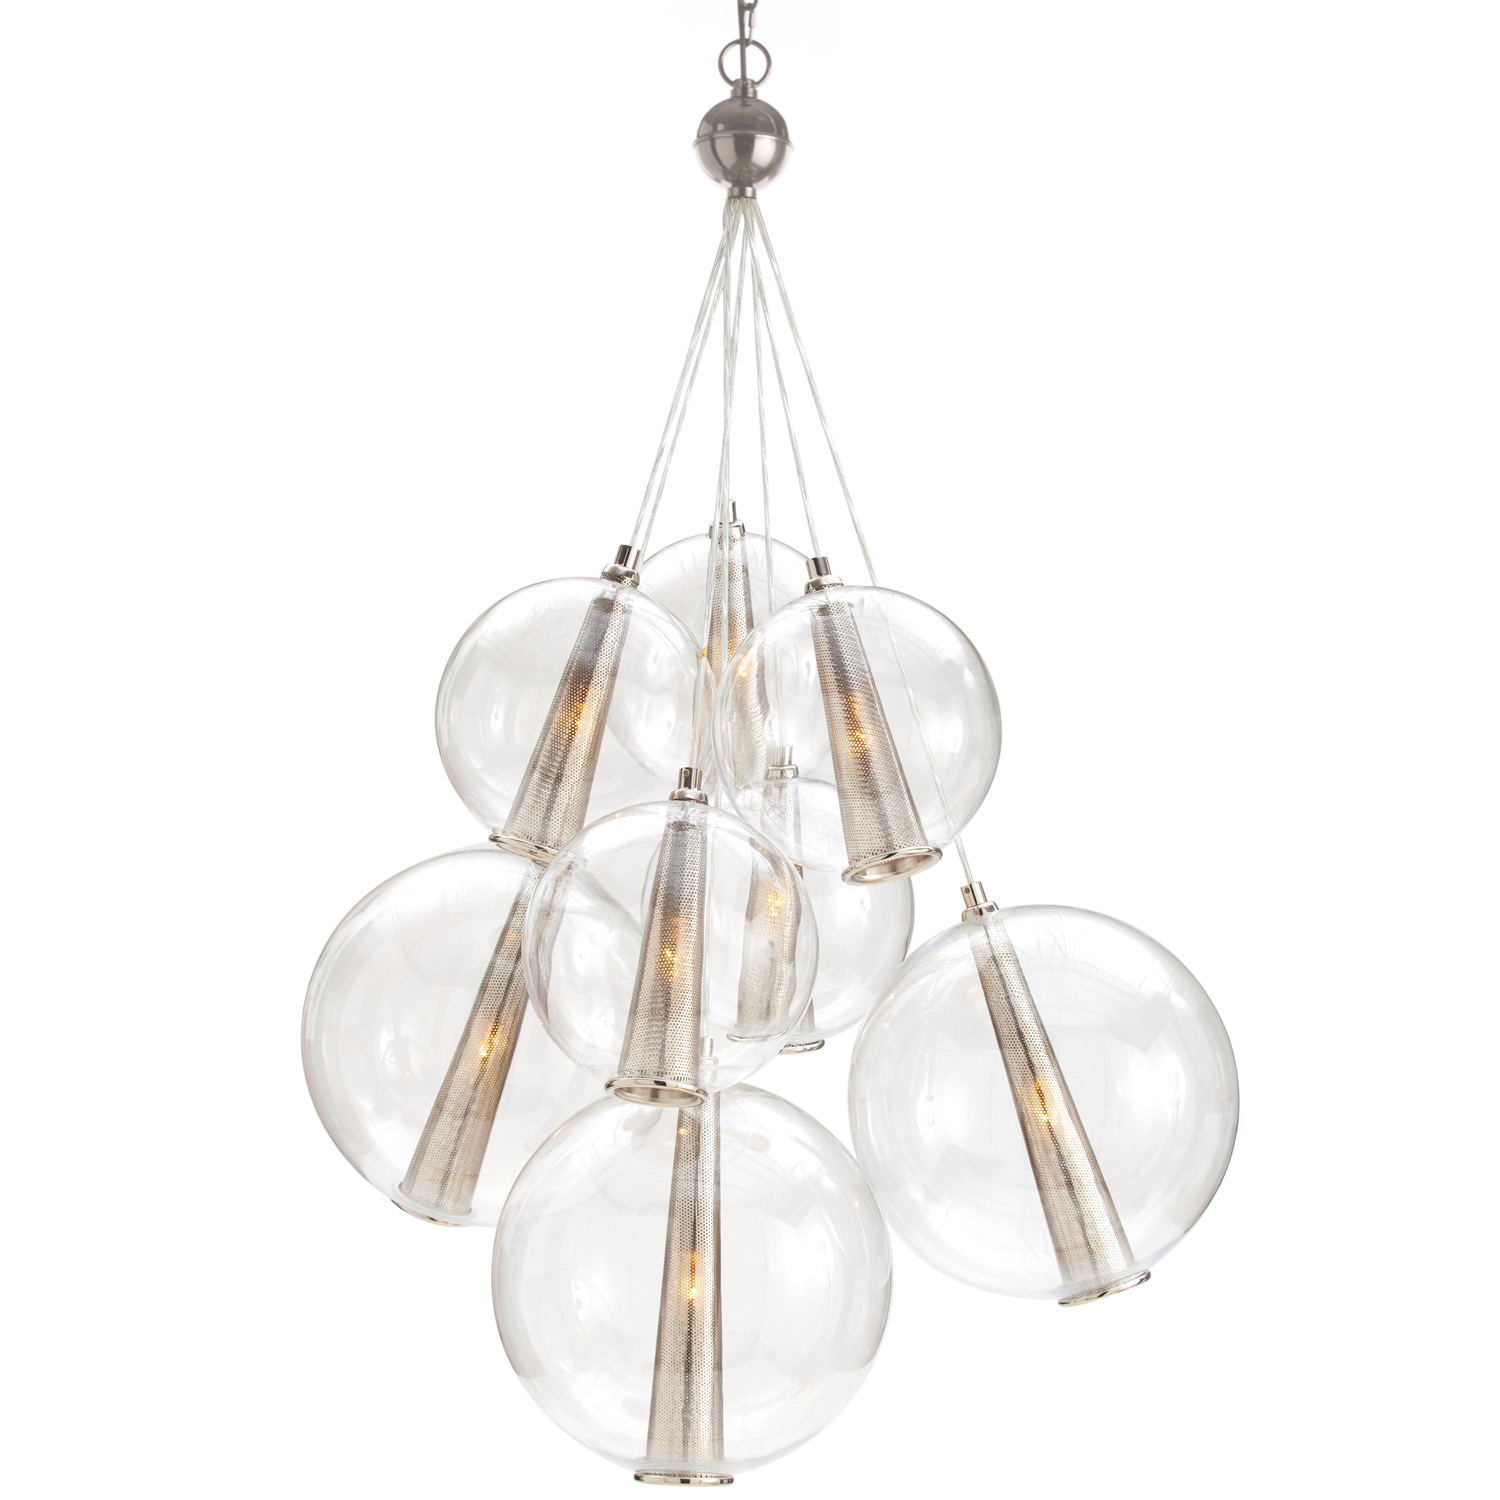 Lighting Cute Dallas Chandelier By Arteriors Lighting For Home